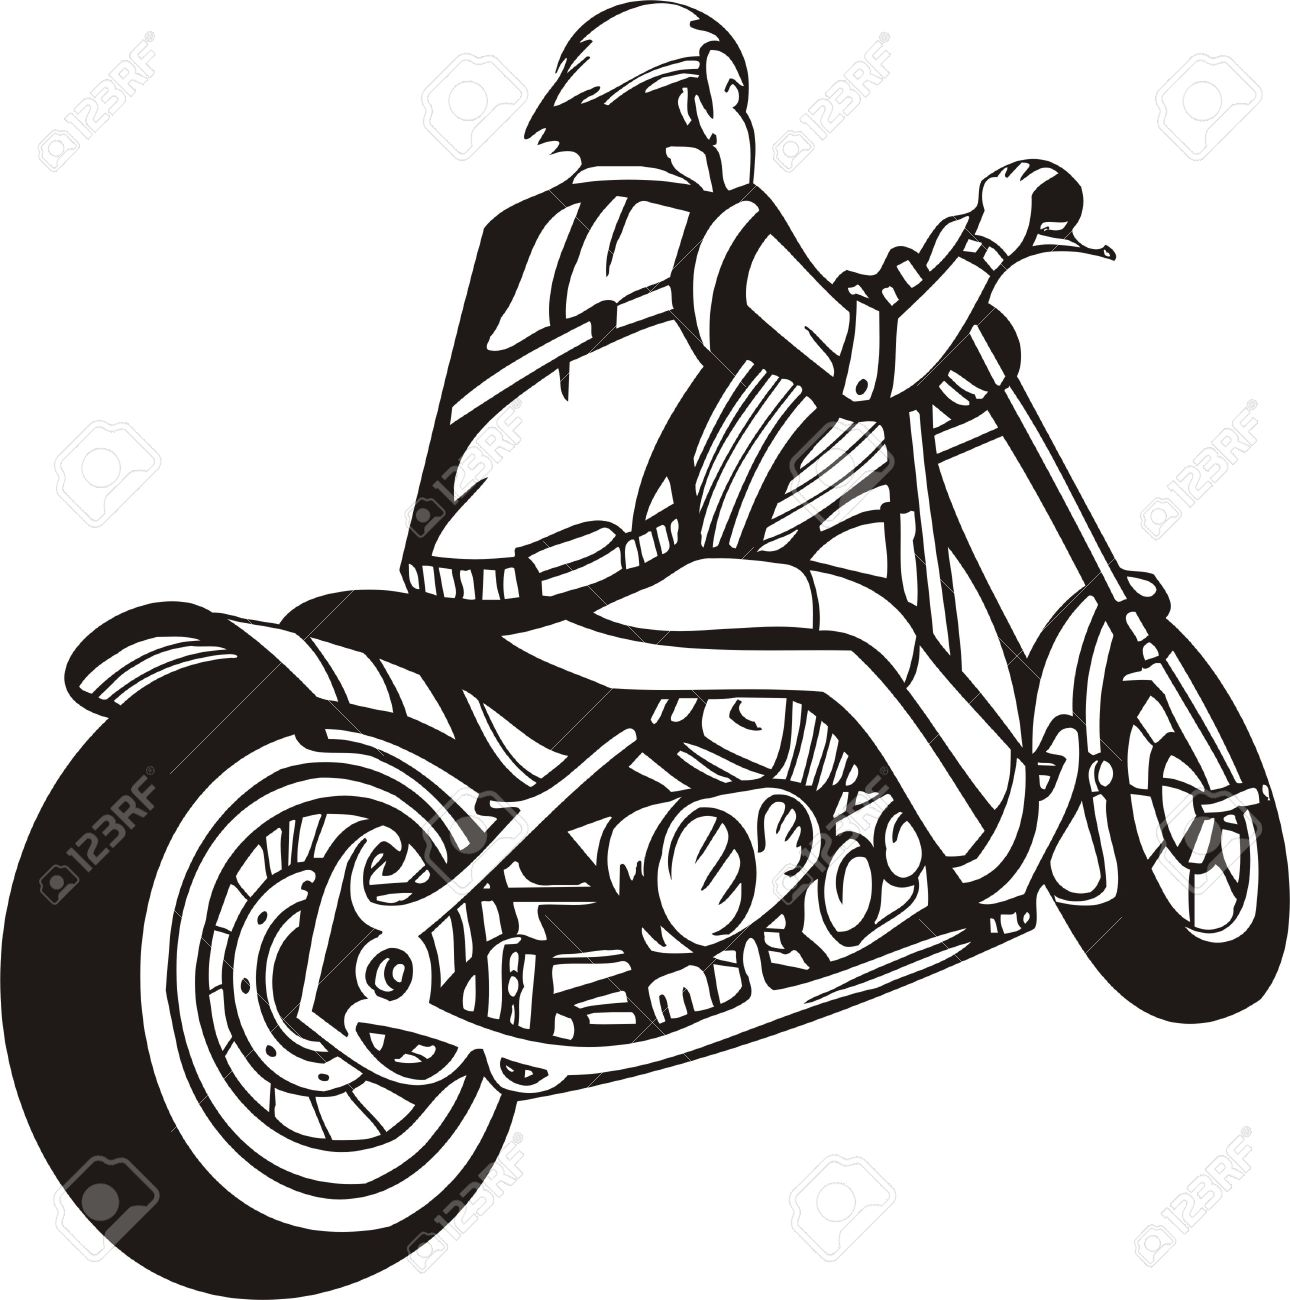 biker on motorcycle vector illustration royalty free cliparts rh 123rf com harley motorcycle vector art motorcycle vector art free download